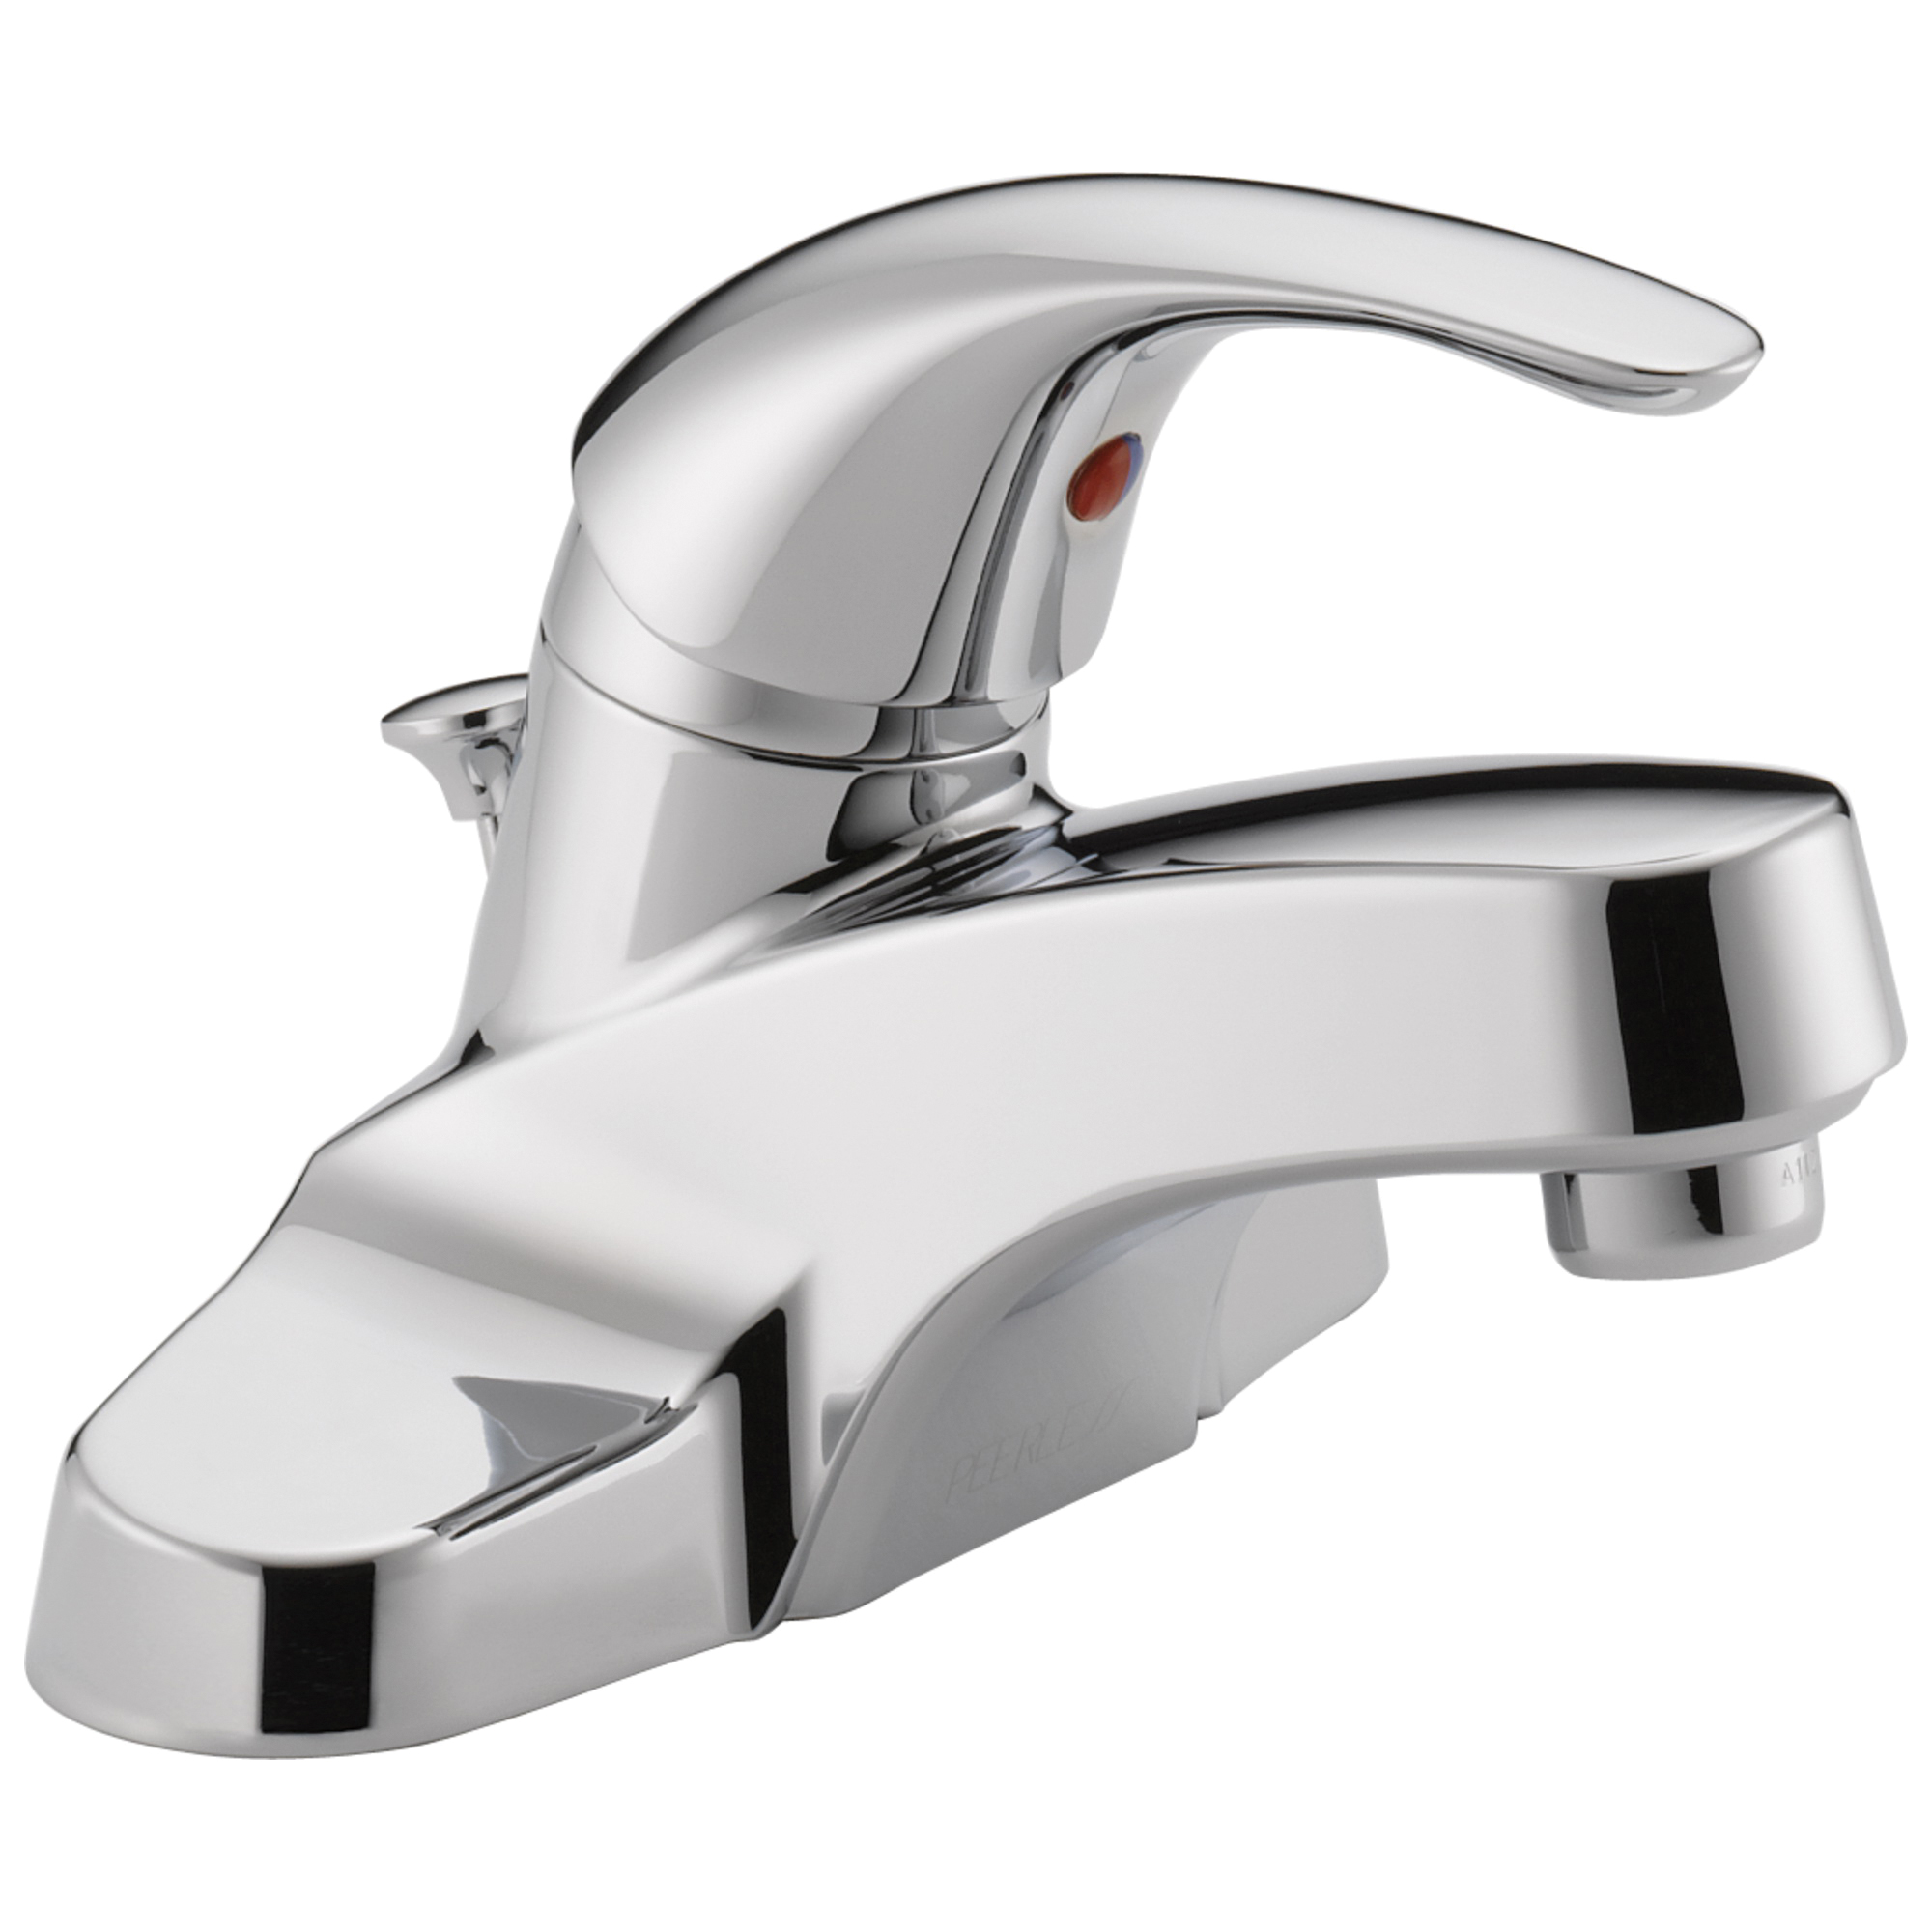 Peerless® P188620LF-M Centerset Lavatory Faucet, Chrome Plated, 1 Handles, Pop-Up Drain, 1.5 gpm